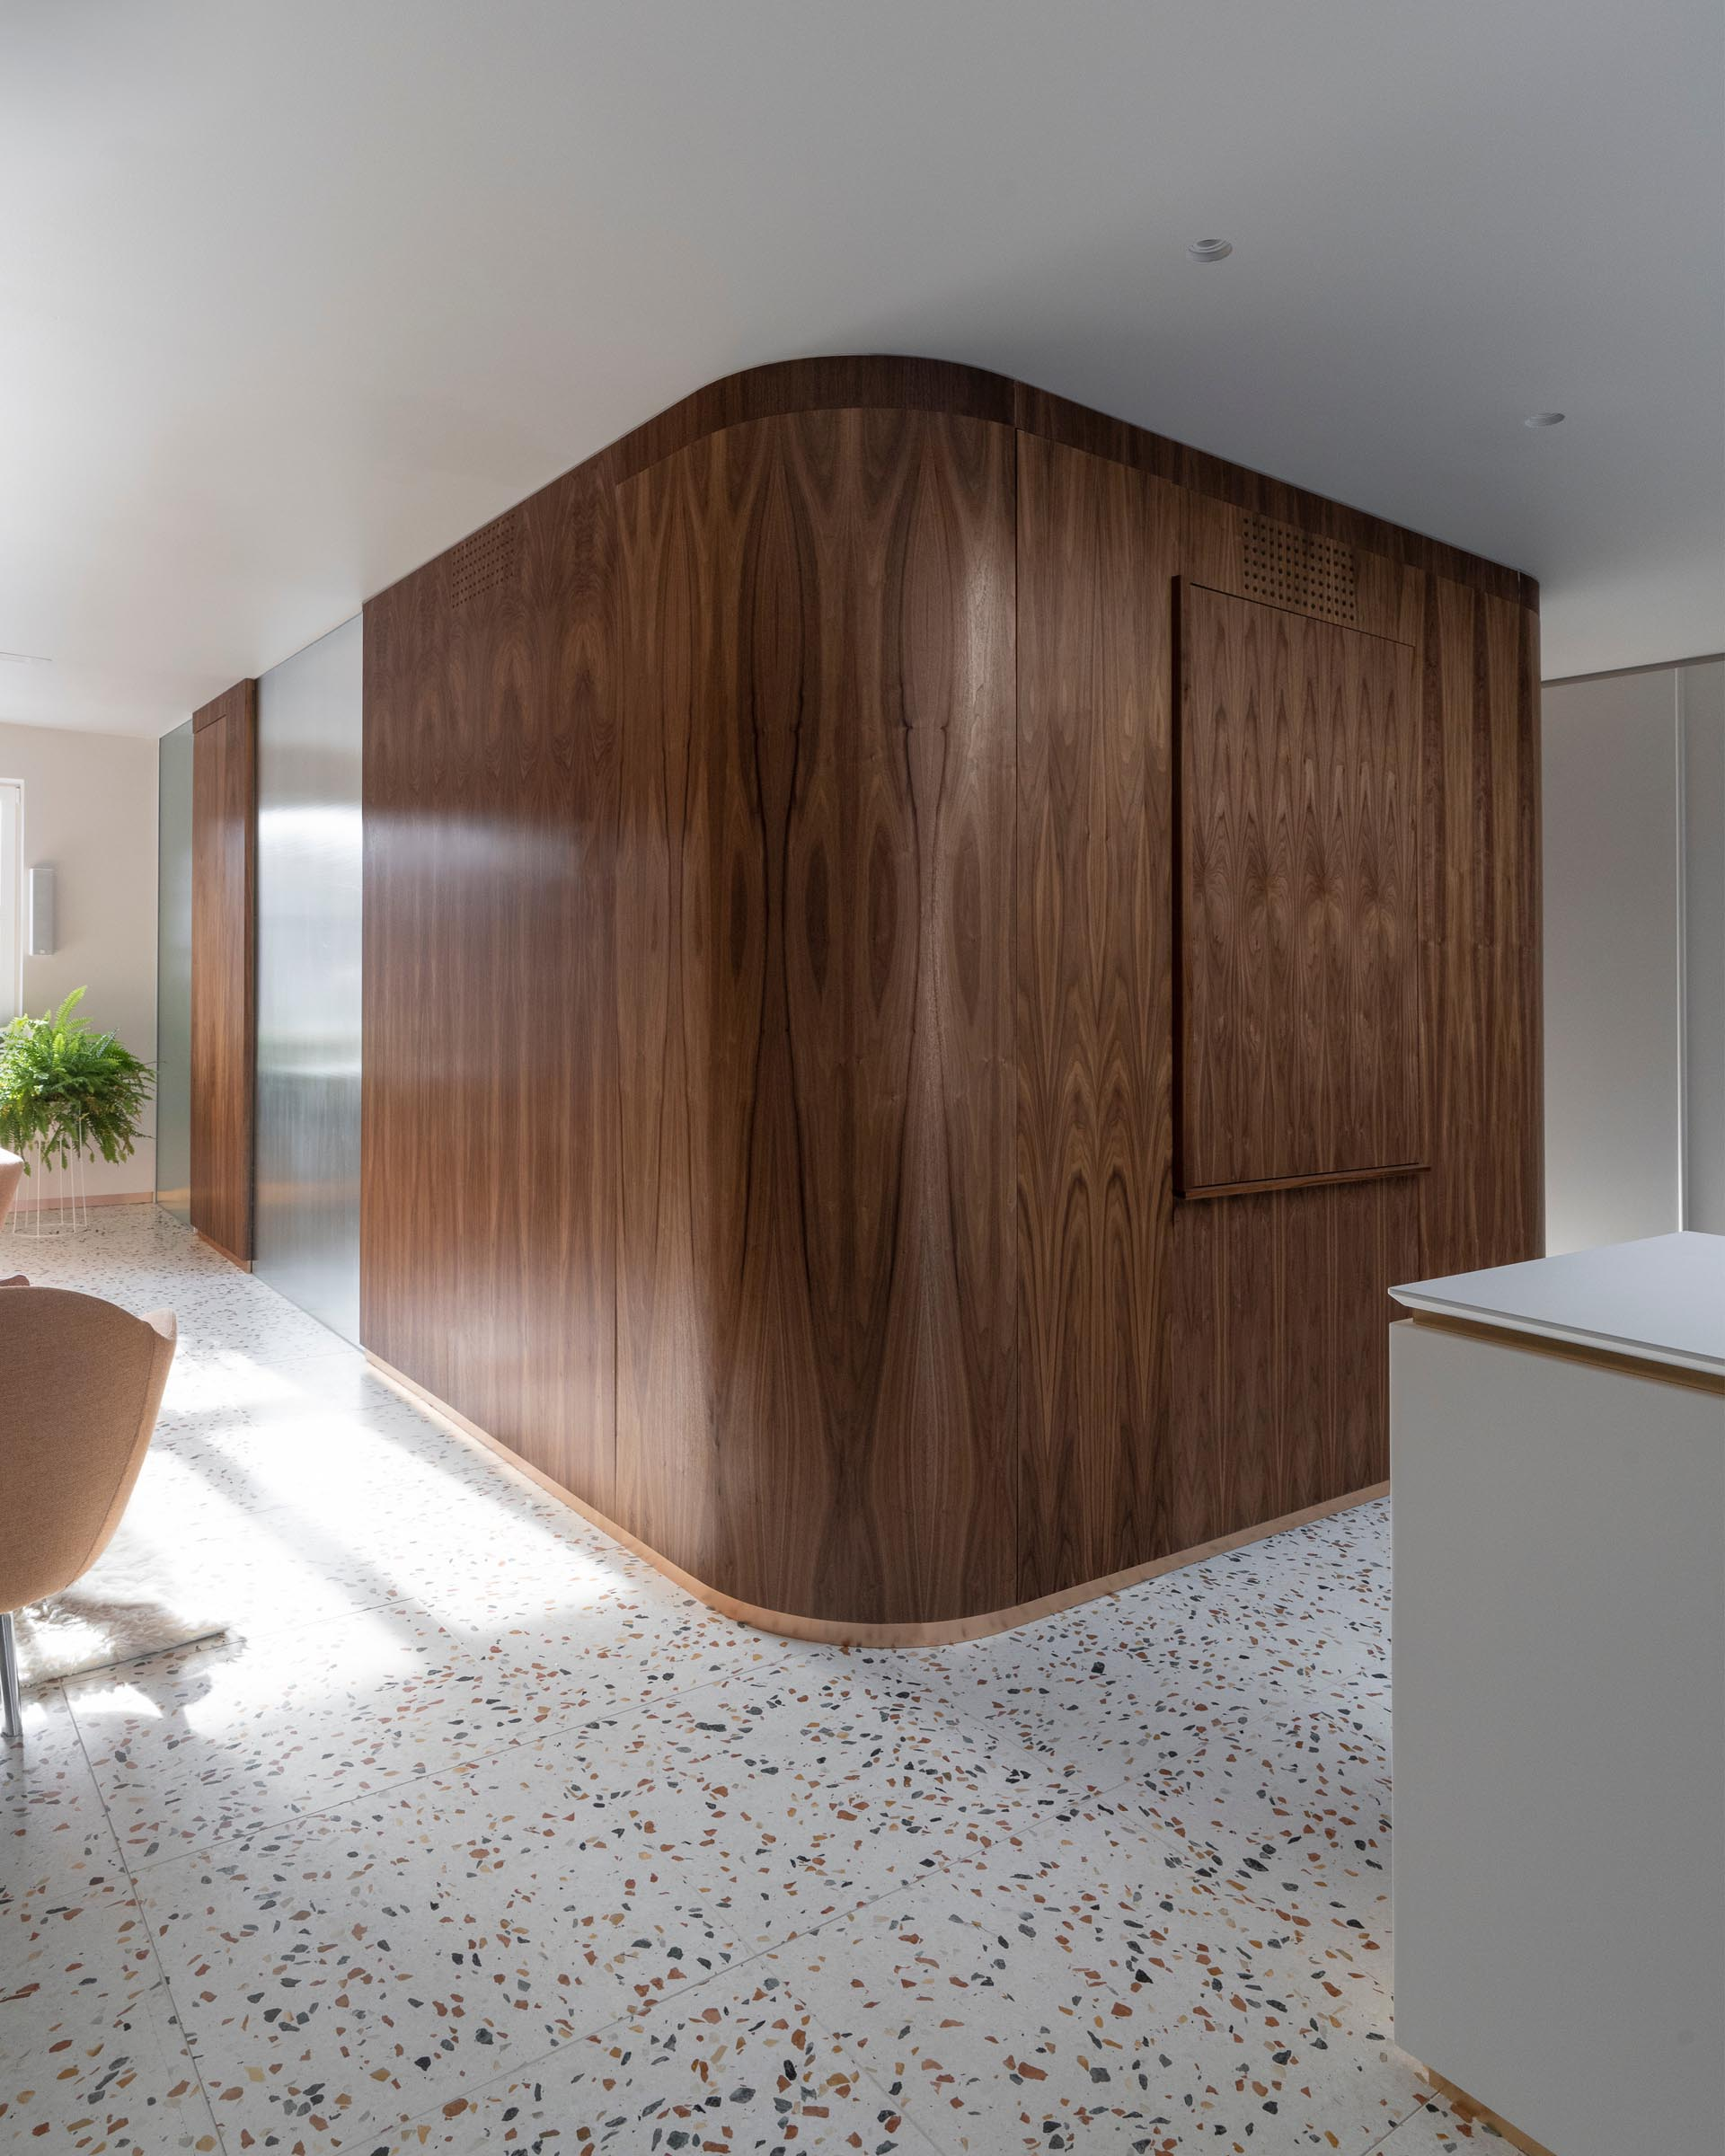 Connecting the various levels of this modern home is a central module clad in walnut that houses the staircase and a small powder room.